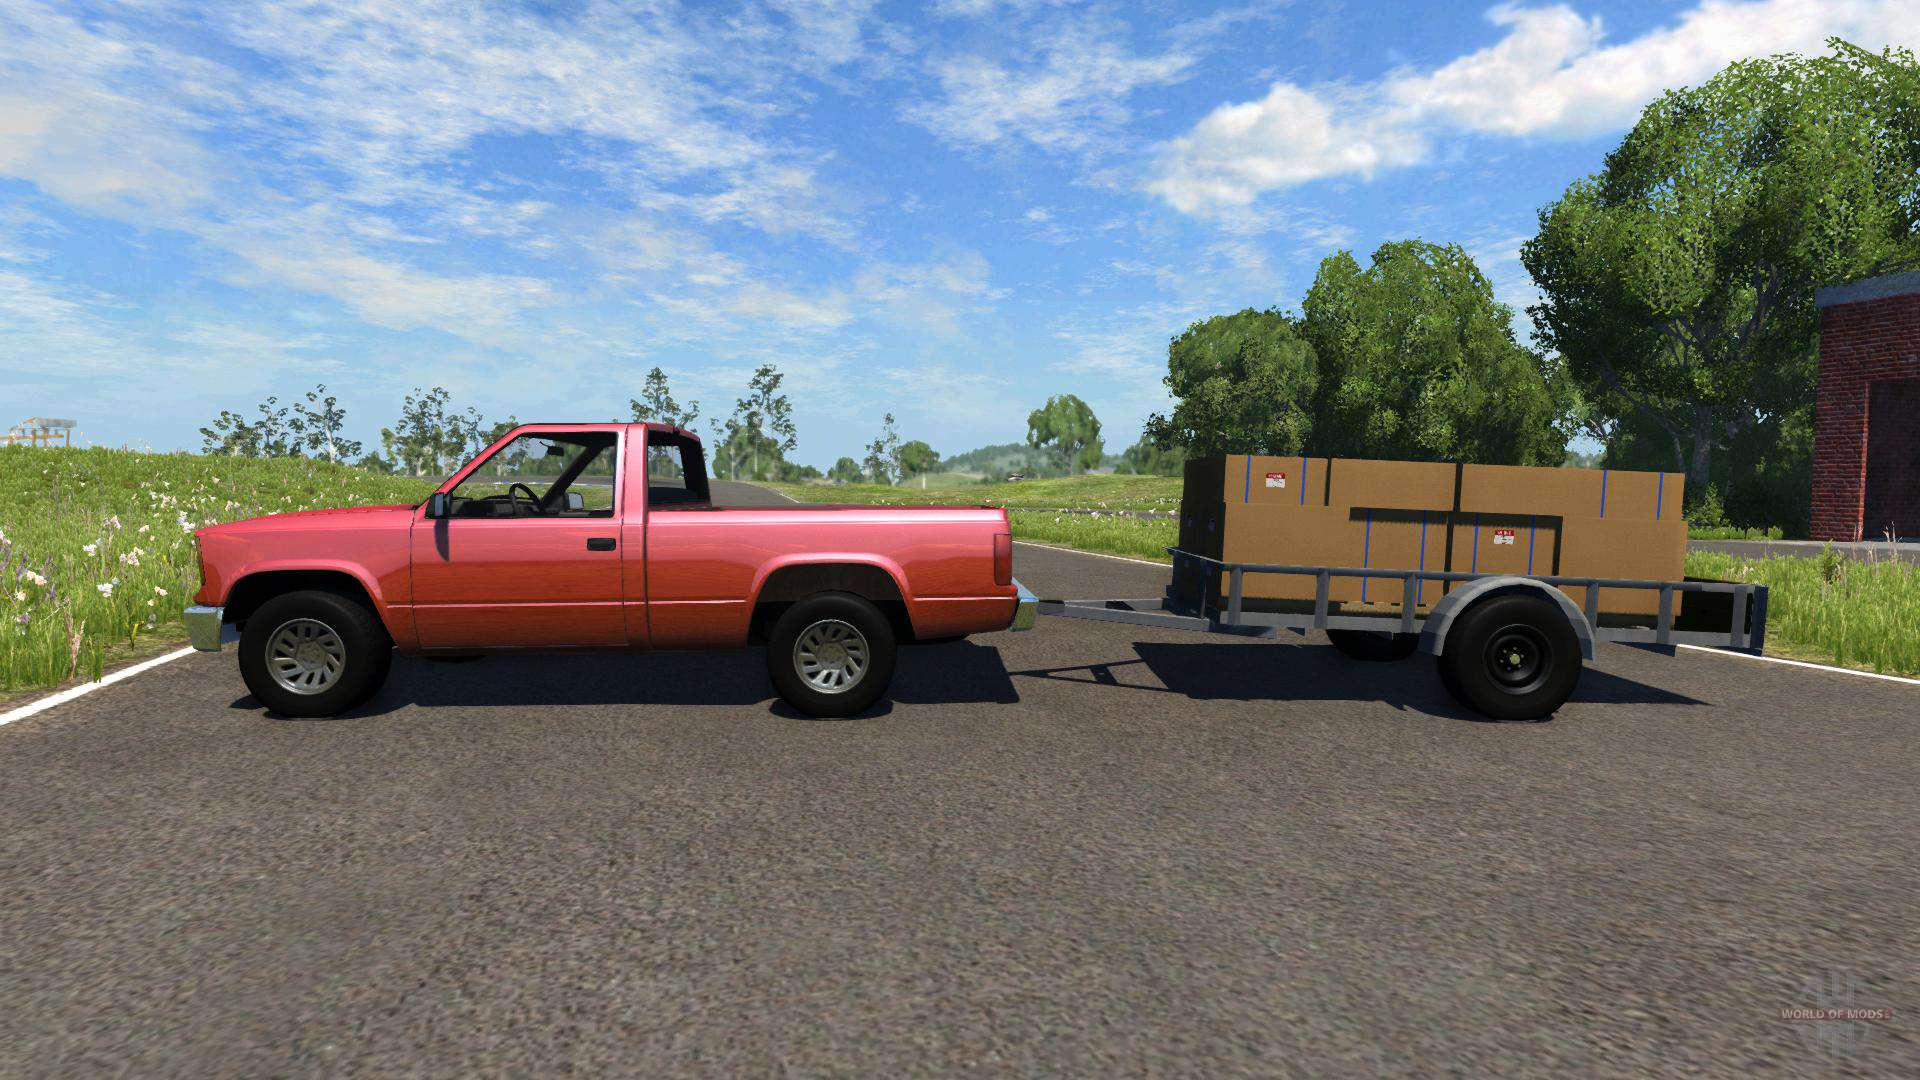 how to hook up trailer to truck gta 5 Detach trailer from truck - attach vehicles to trailer (so it won't fall when driving) drag and drop contents inside 'install' folder into gtav main directory.